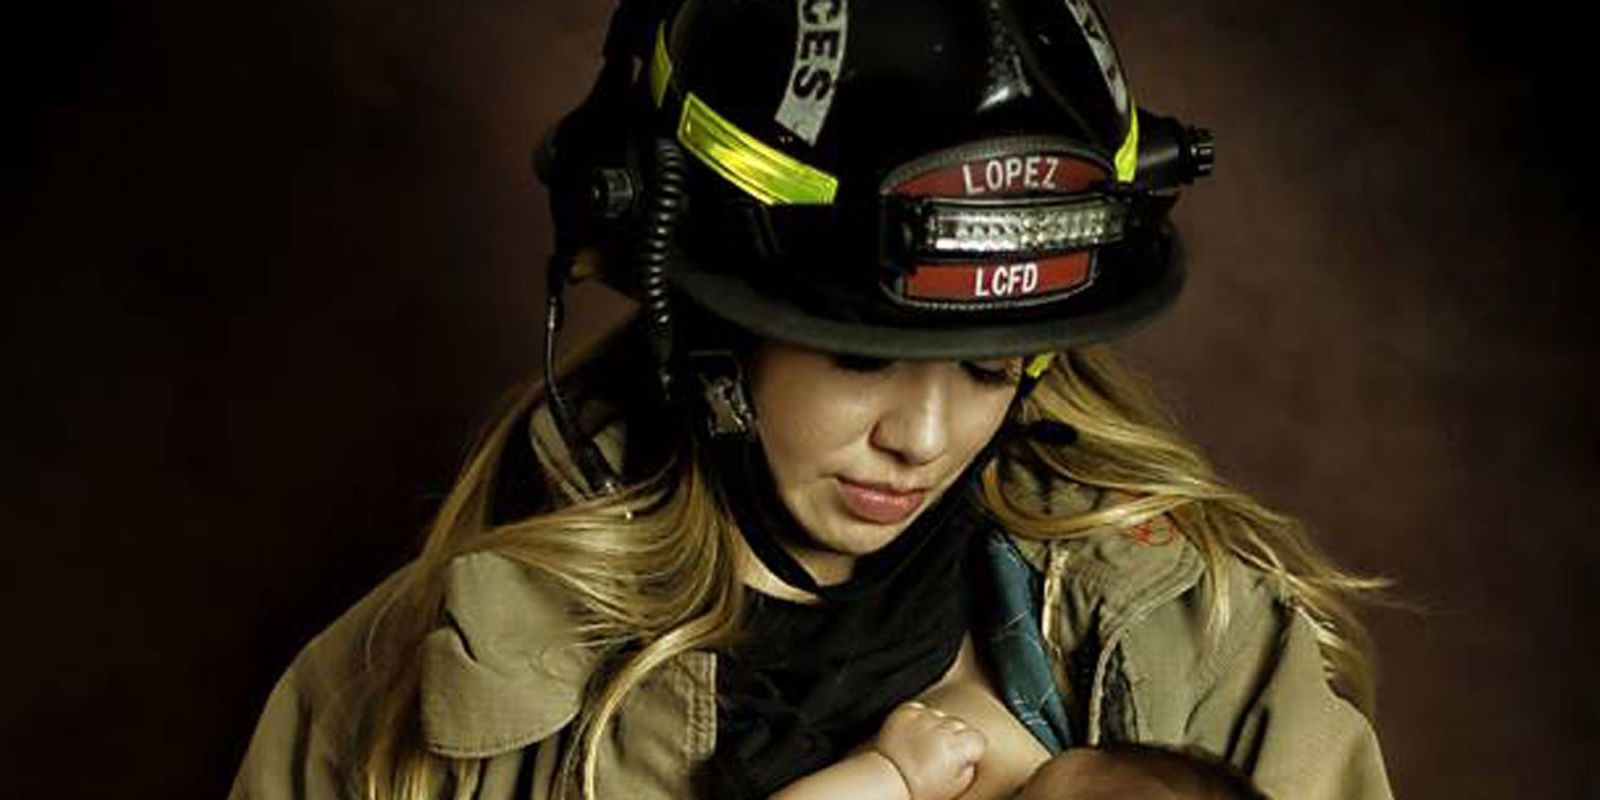 A Firefighter Is in Trouble Because of His Wifes Breastfeeding Photo